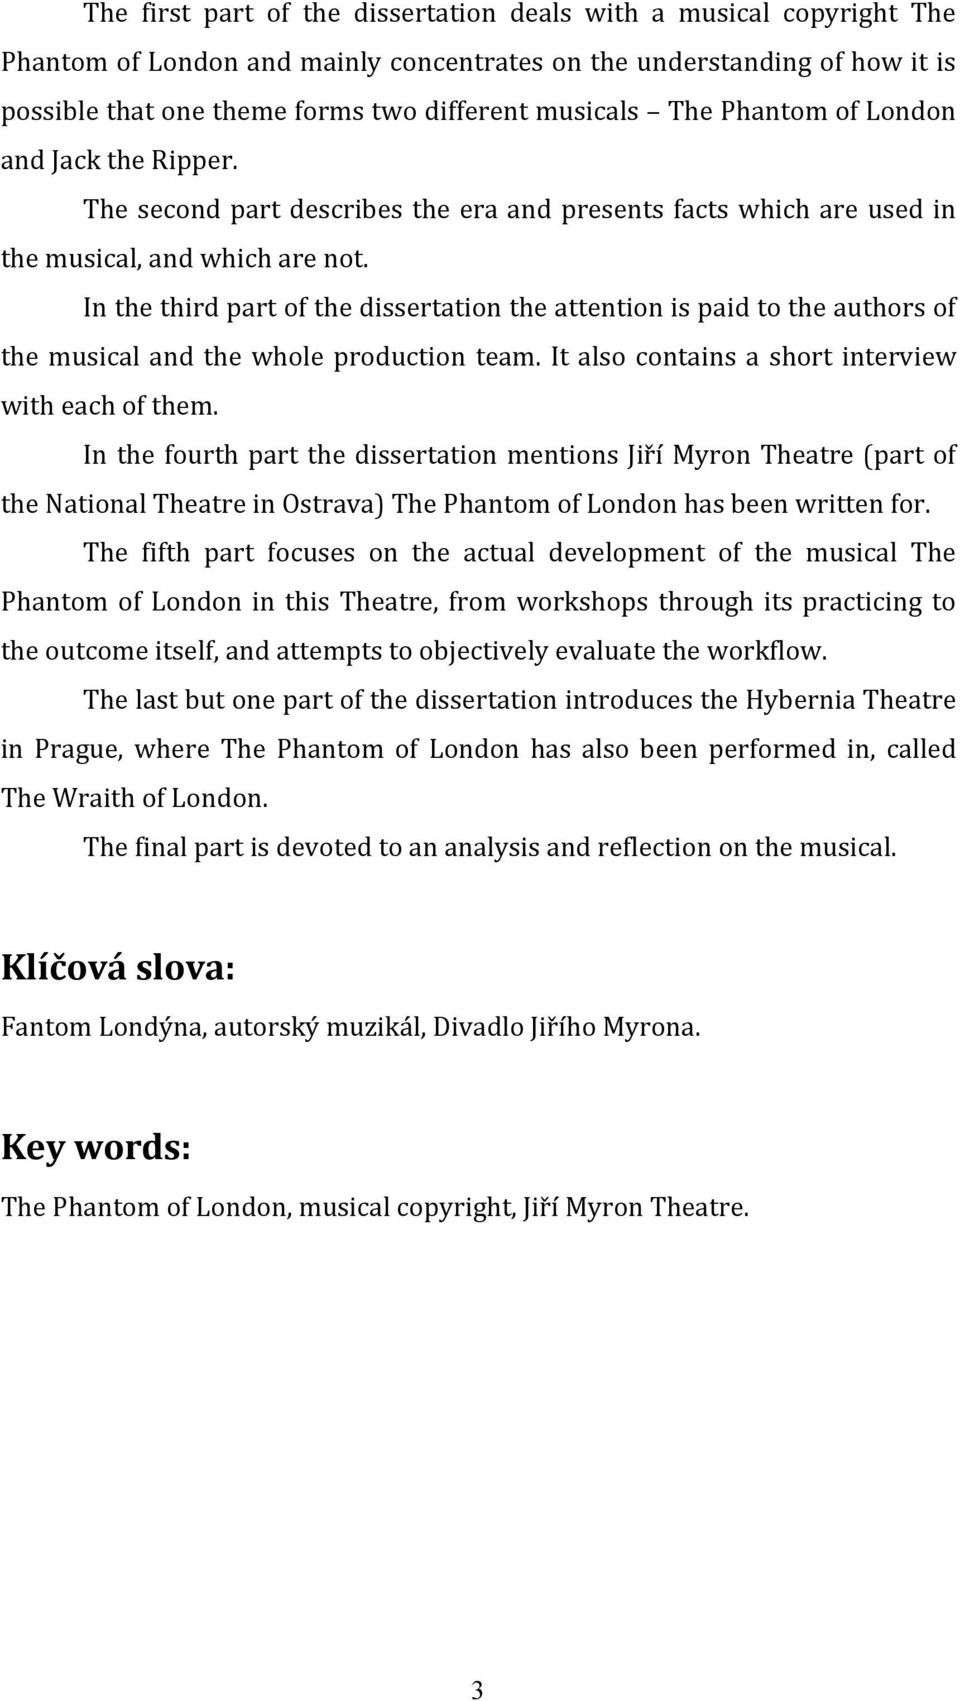 In the third part of the dissertation the attention is paid to the authors of the musical and the whole production team. It also contains a short interview with each of them.